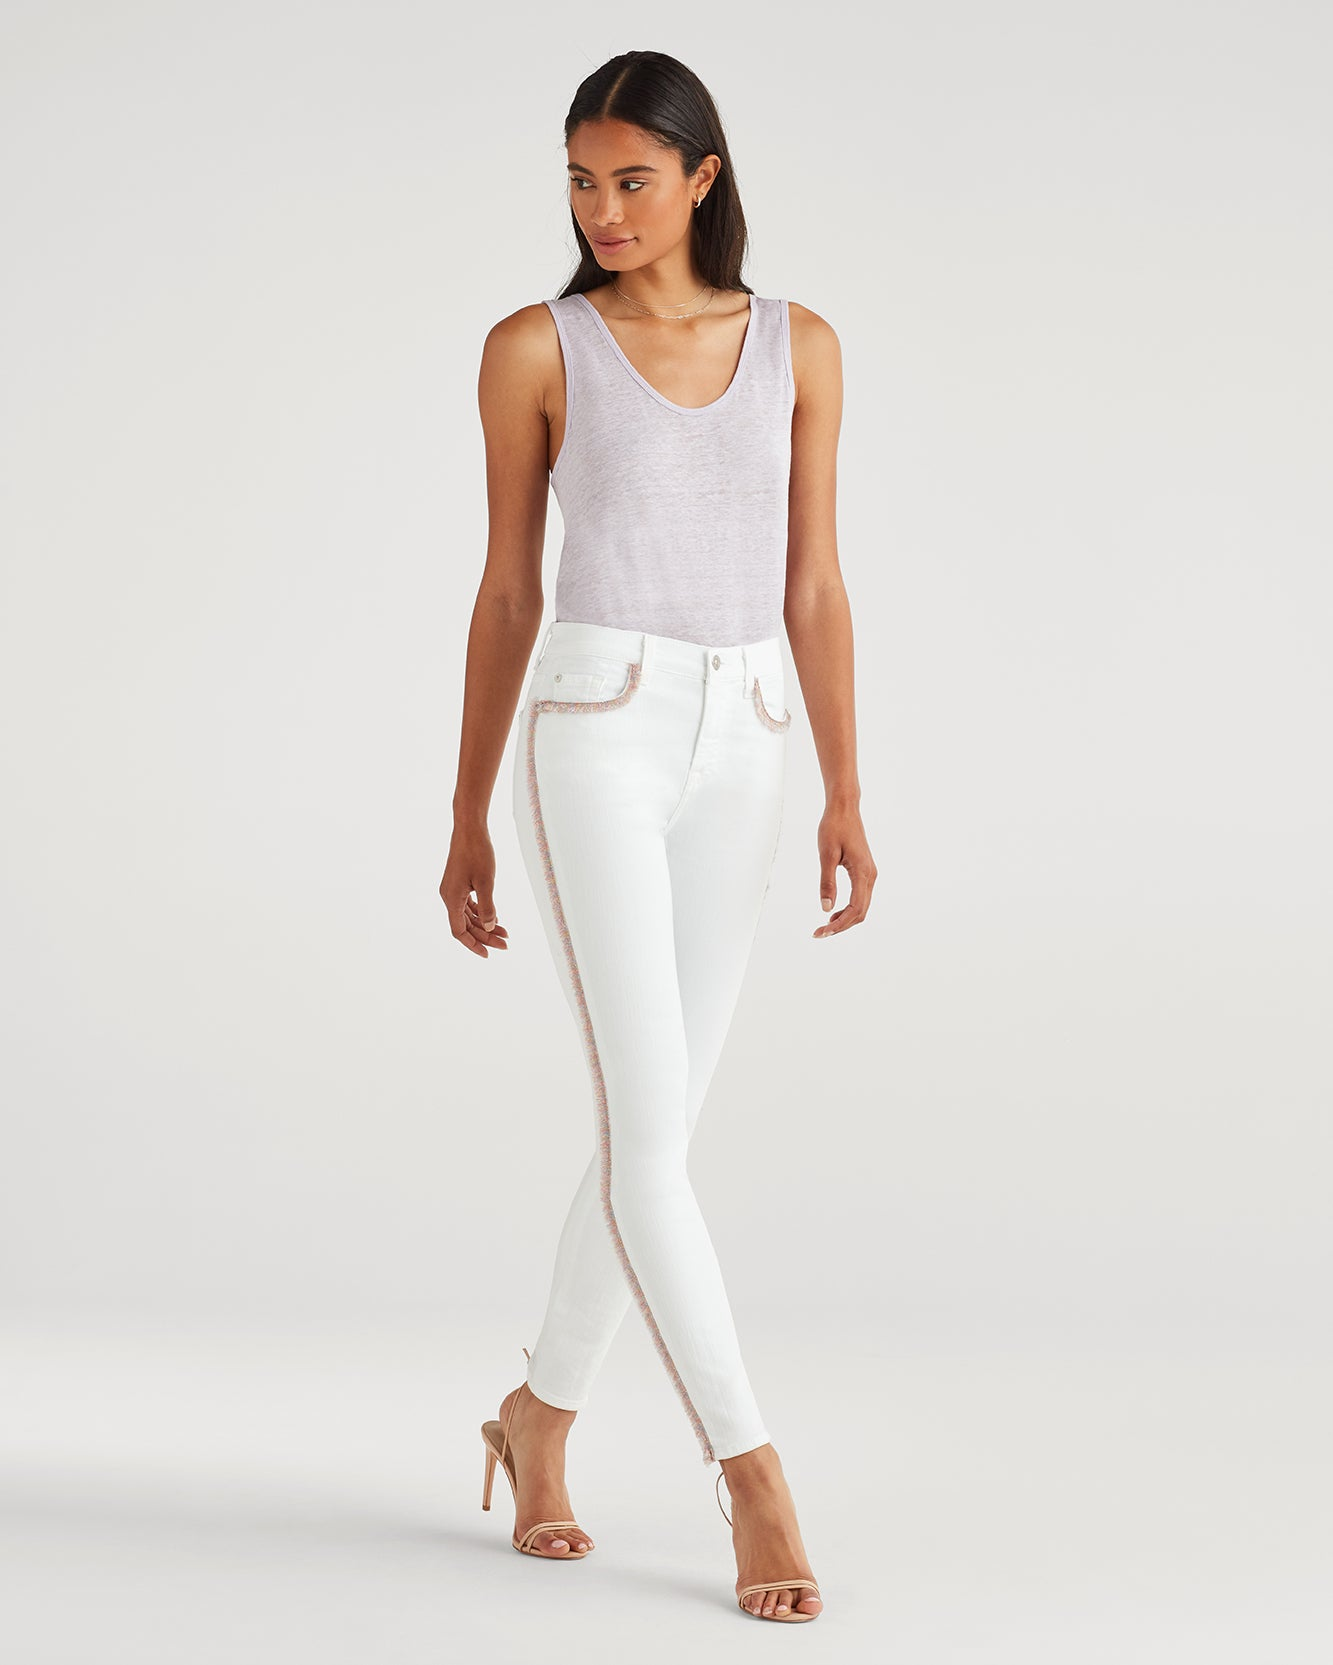 Image of The High Waist Ankle Skinny with Rainbow Fringe in Runway White Fashion